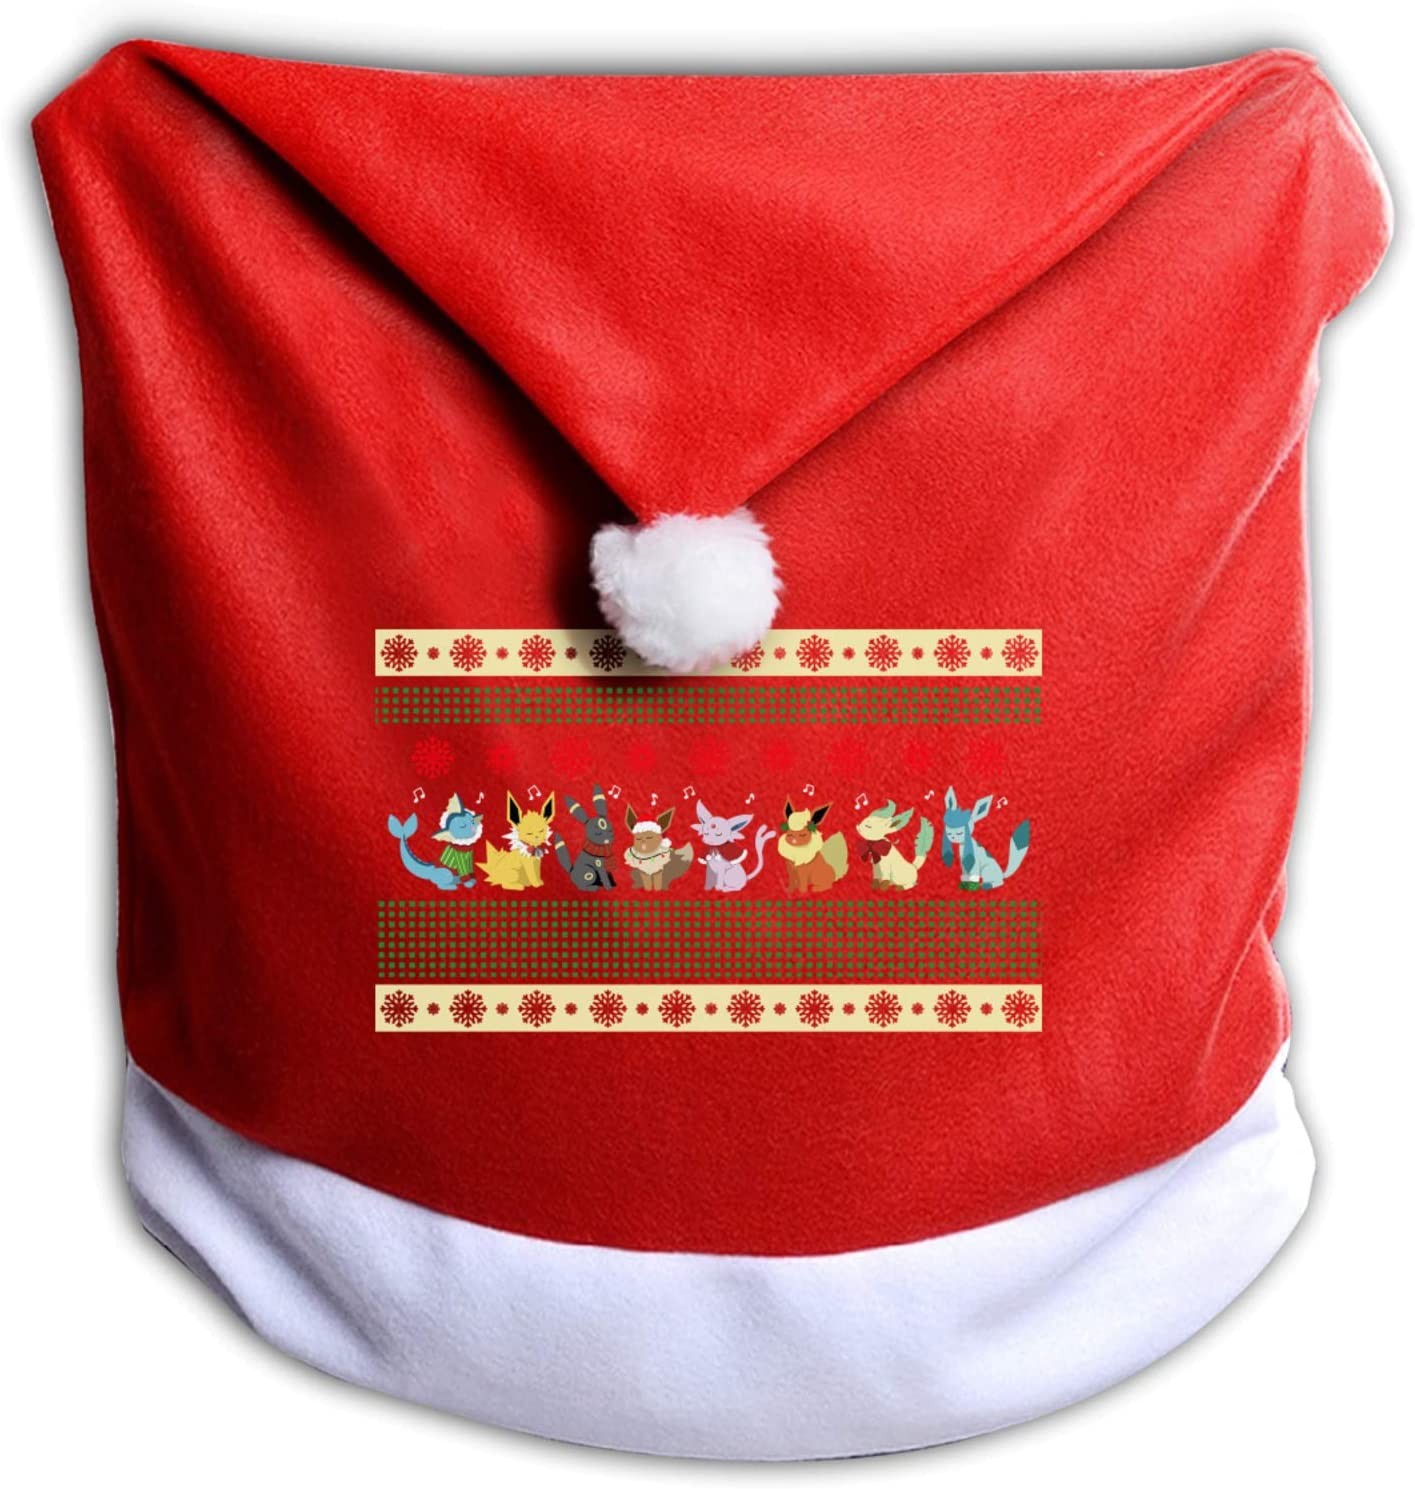 Thomasa Christmas-Eevee Christmas Chair Seat Back Covers Santa Hat Chair Covers for Xmas Holiday Christmas Party Festive Decoration Red